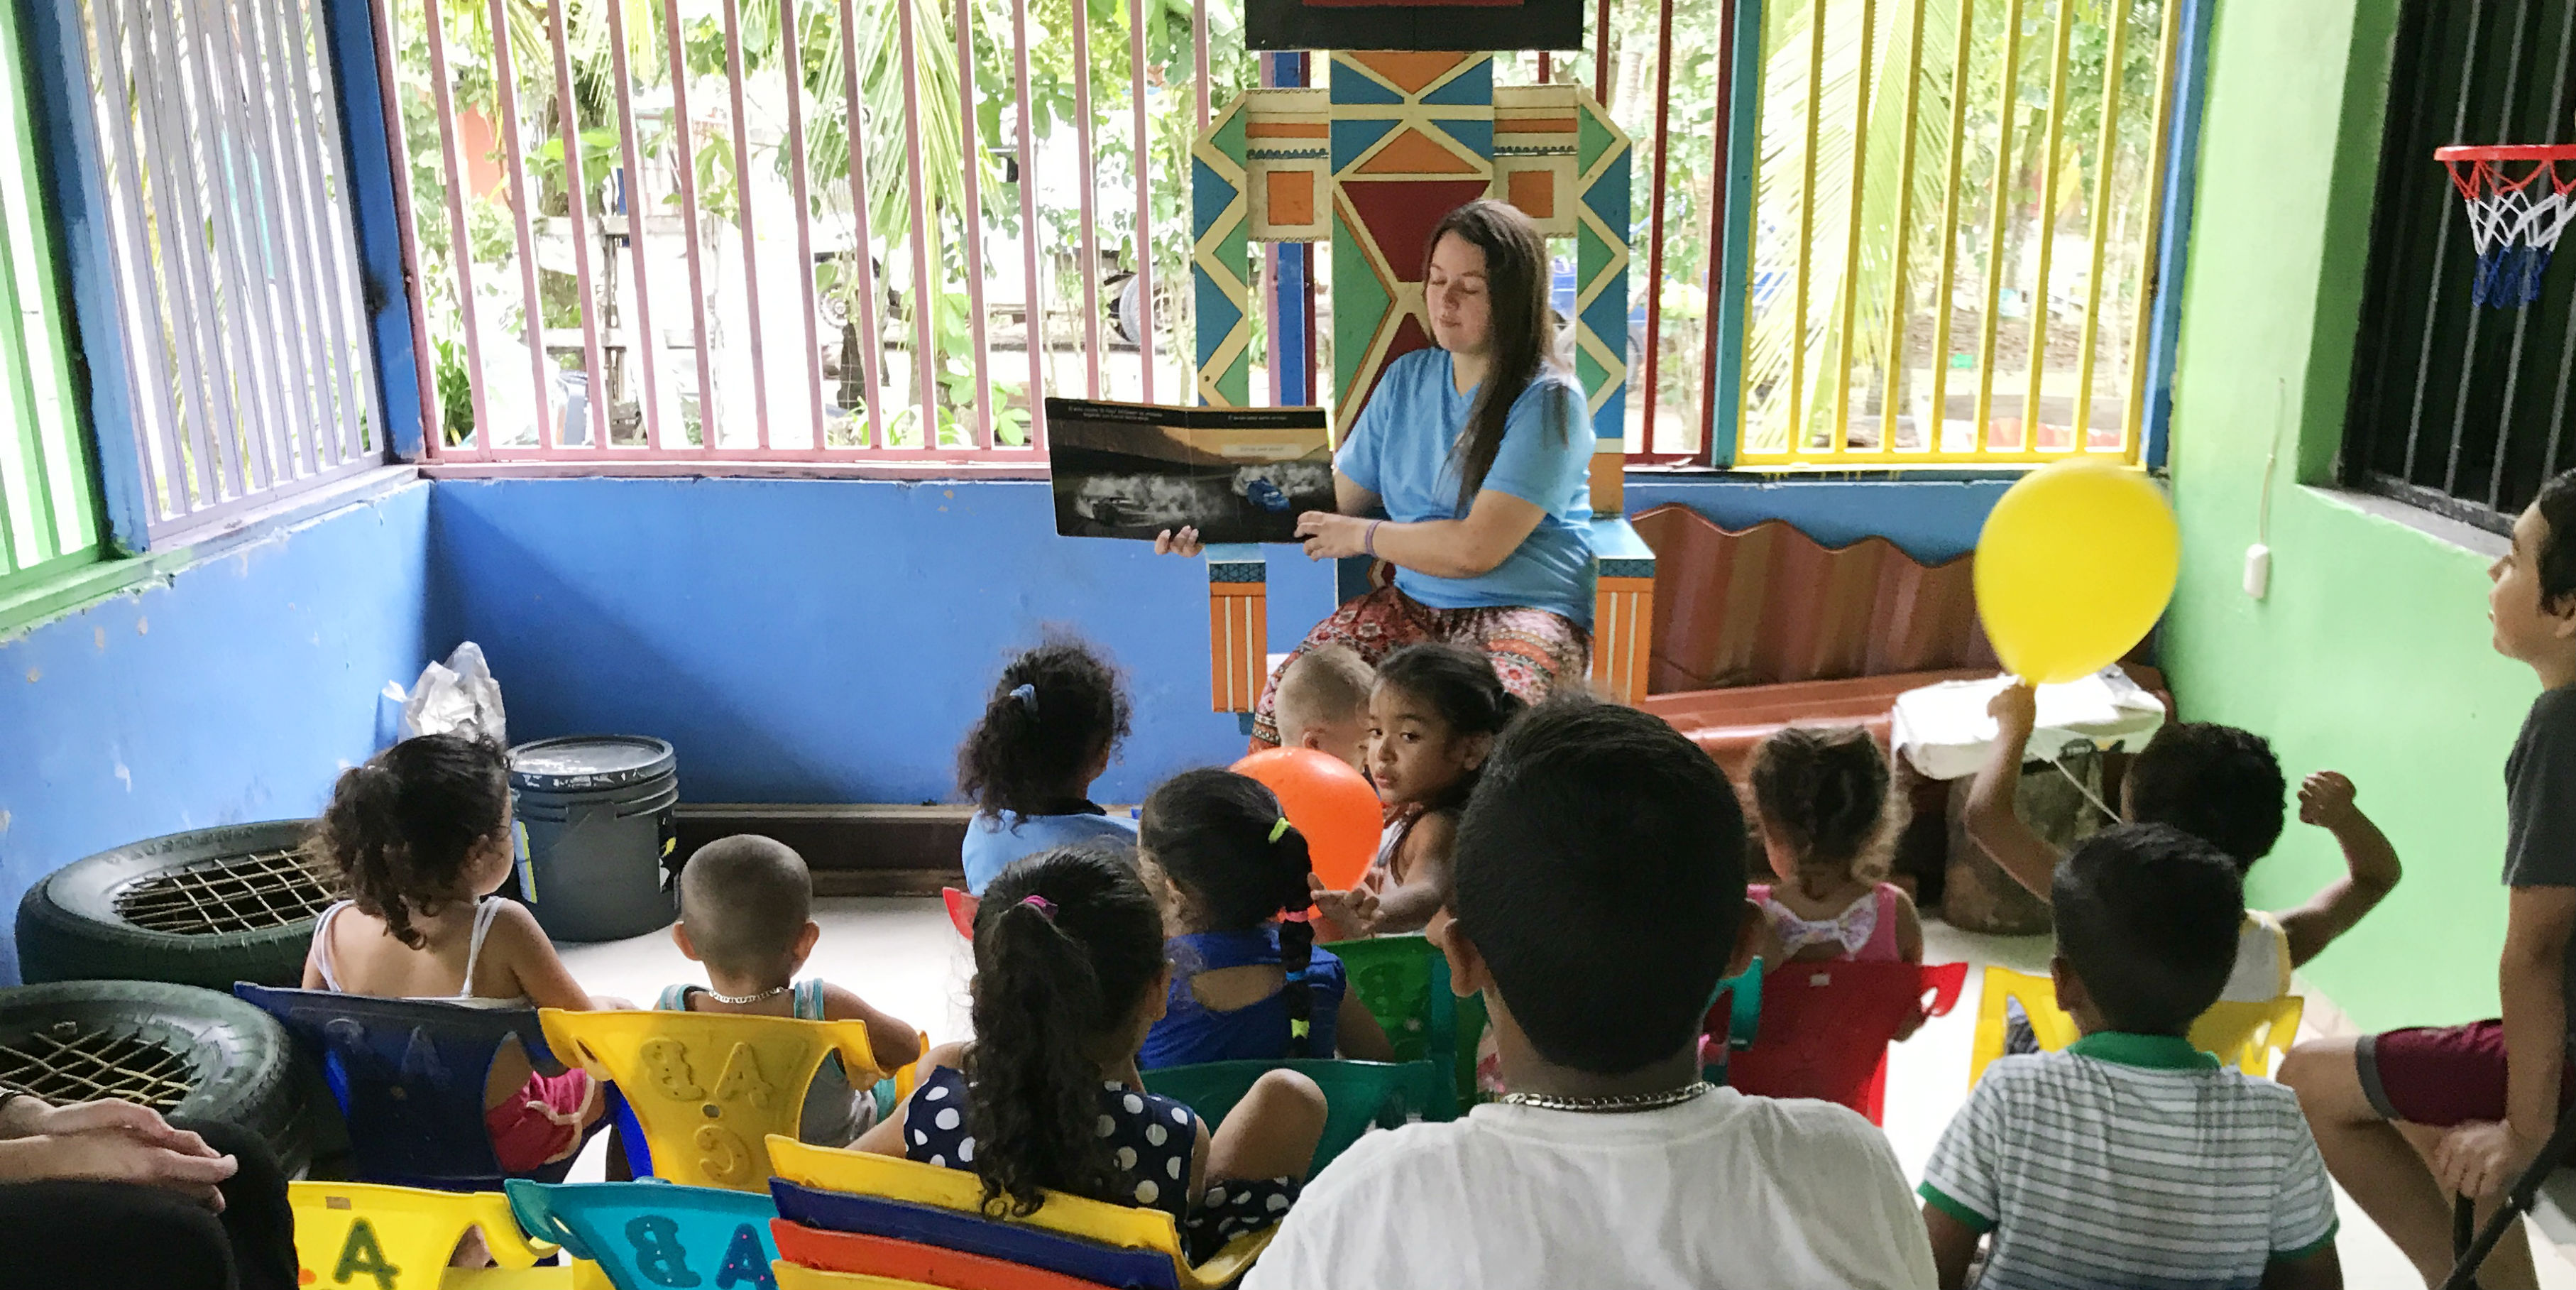 A gap year volunteer reads to children in Costa Rica.